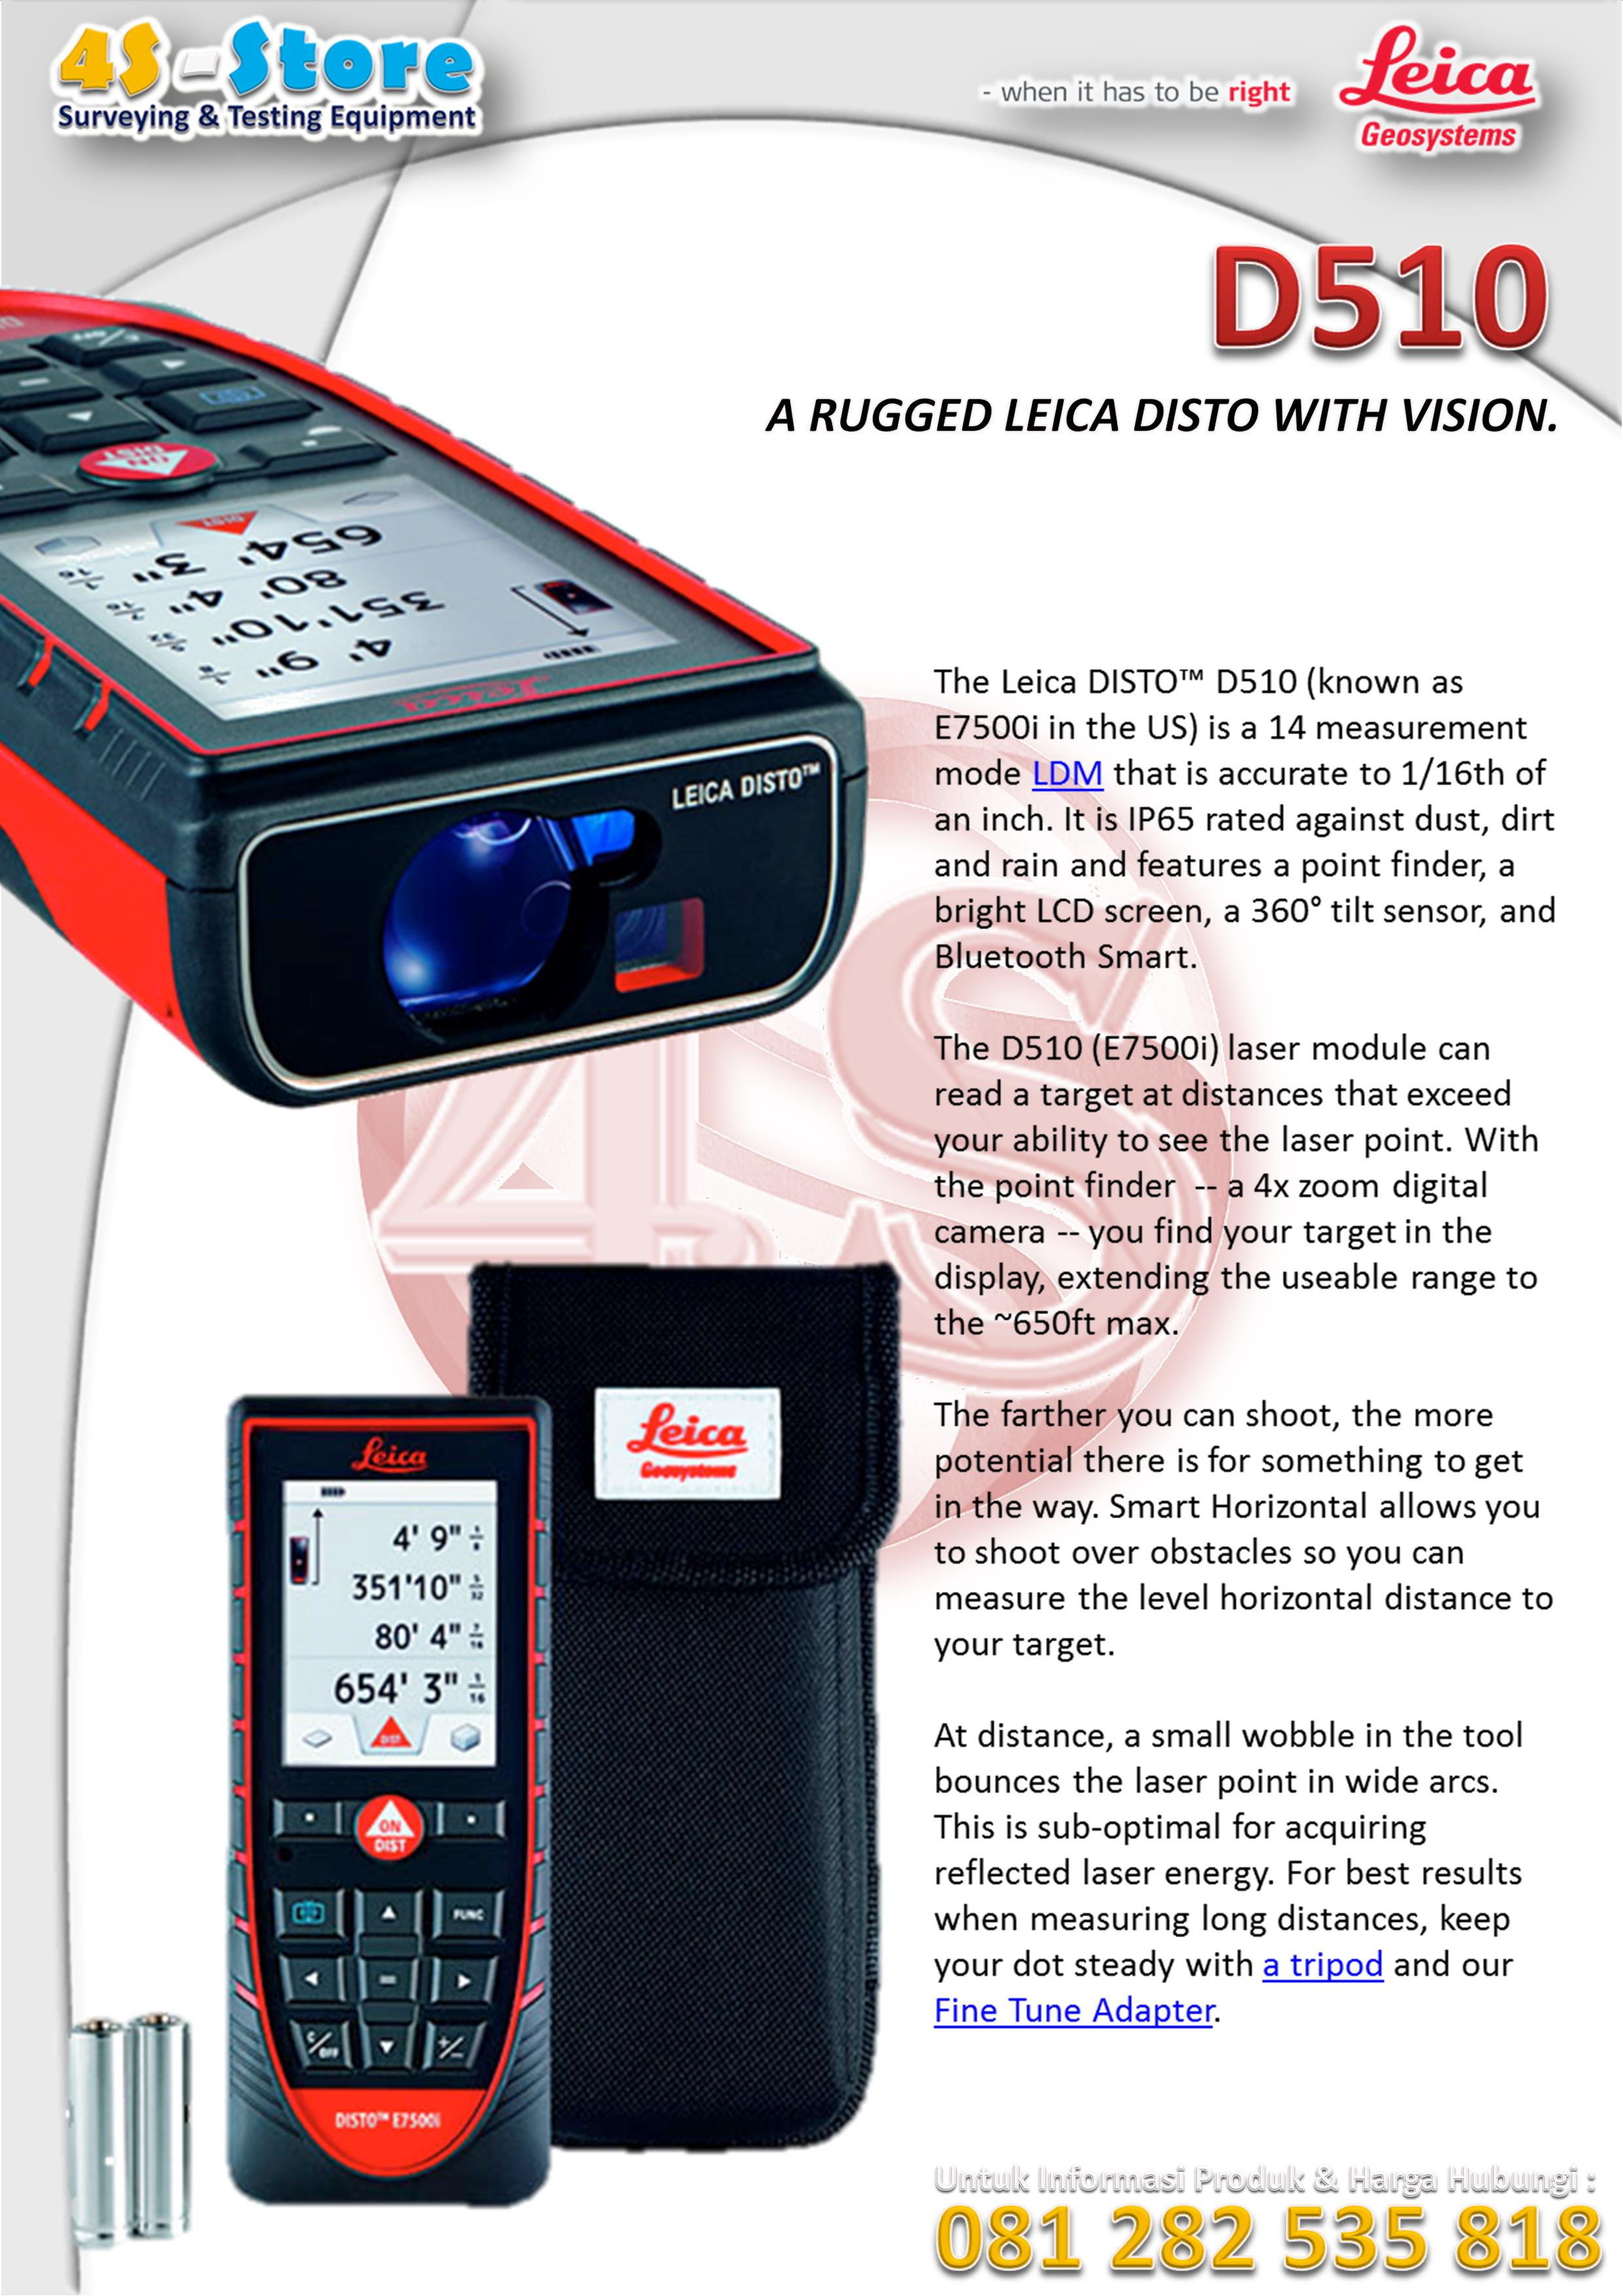 Leica Geosystem All Produk 4s Store Surveying